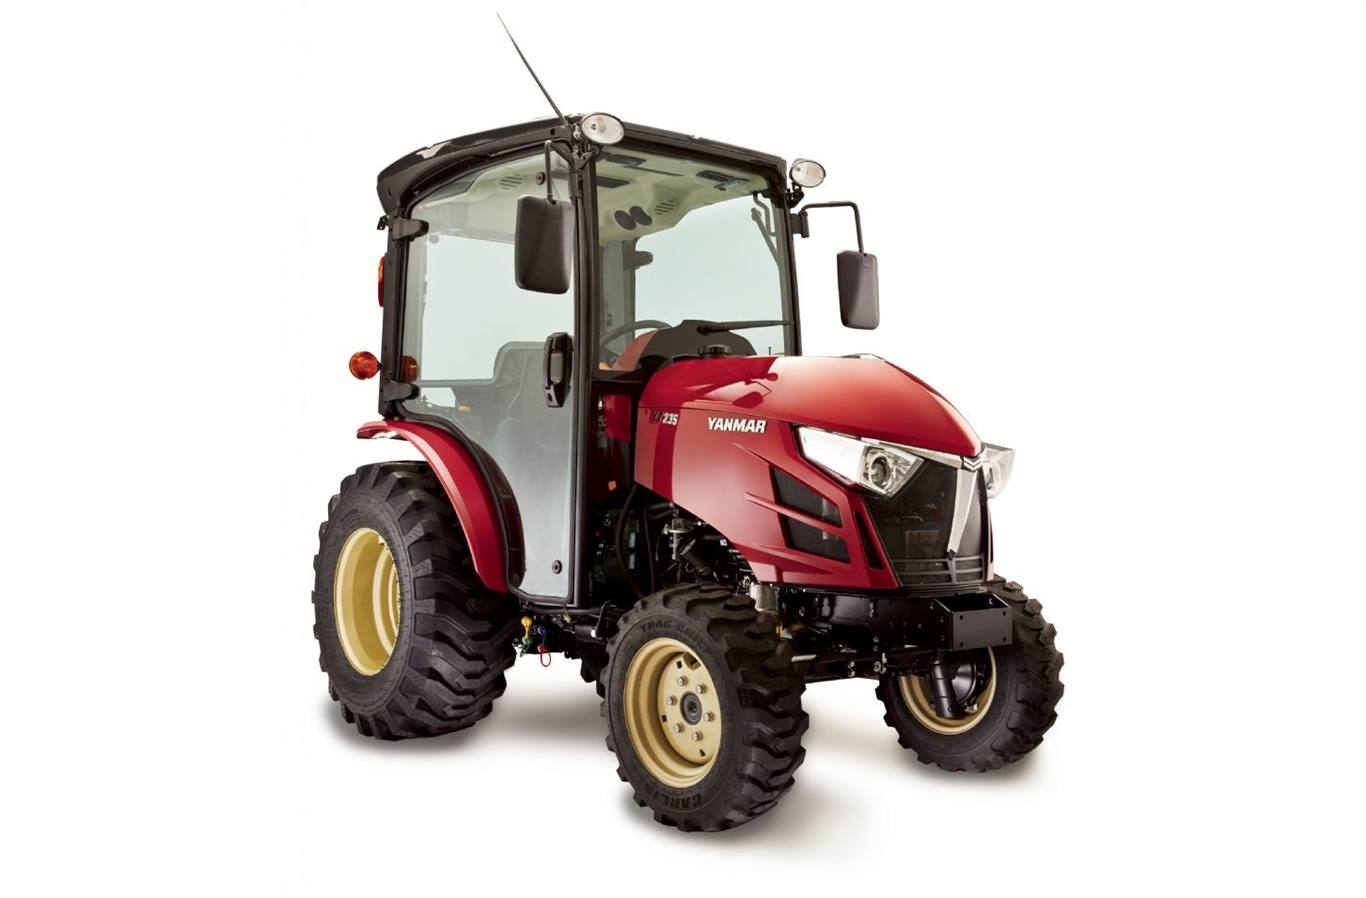 Inventory from Yanmar USA Martin's Outdoor Power Equipment